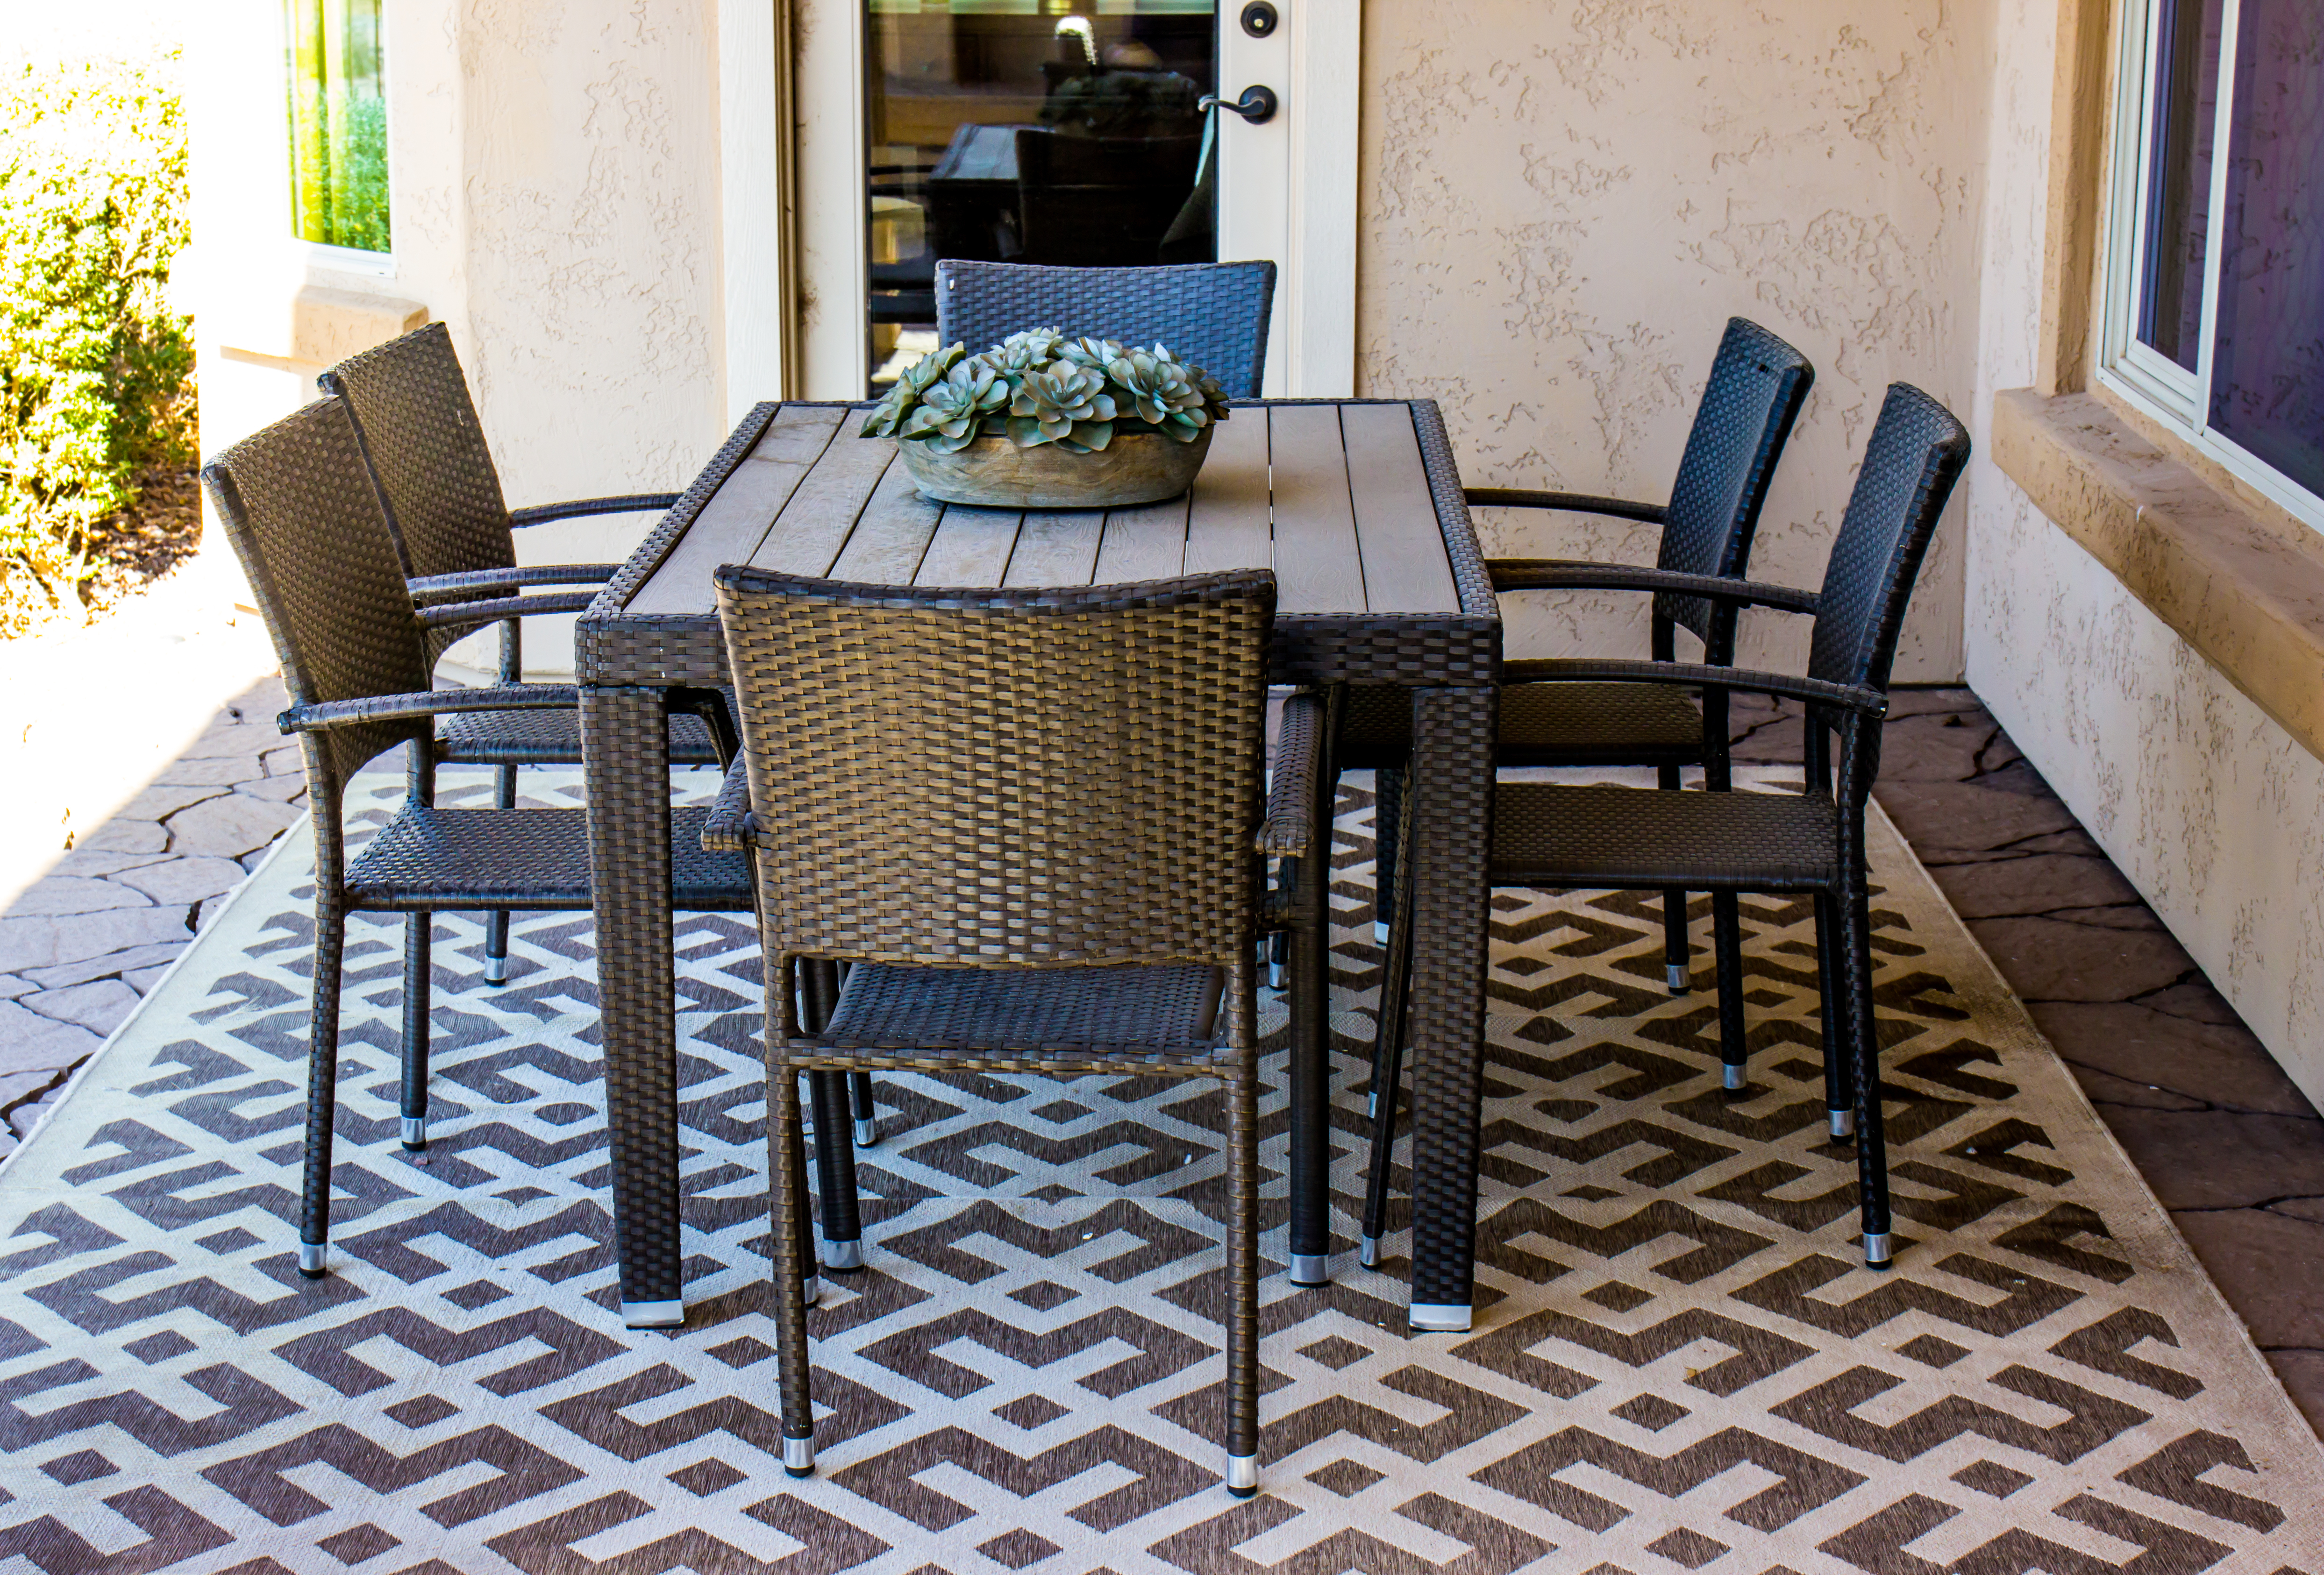 What Size Area Rug Should Go Under A 48 Inch Round Table? | Home Within Most Recent Partin 3 Piece Dining Sets (Image 20 of 20)